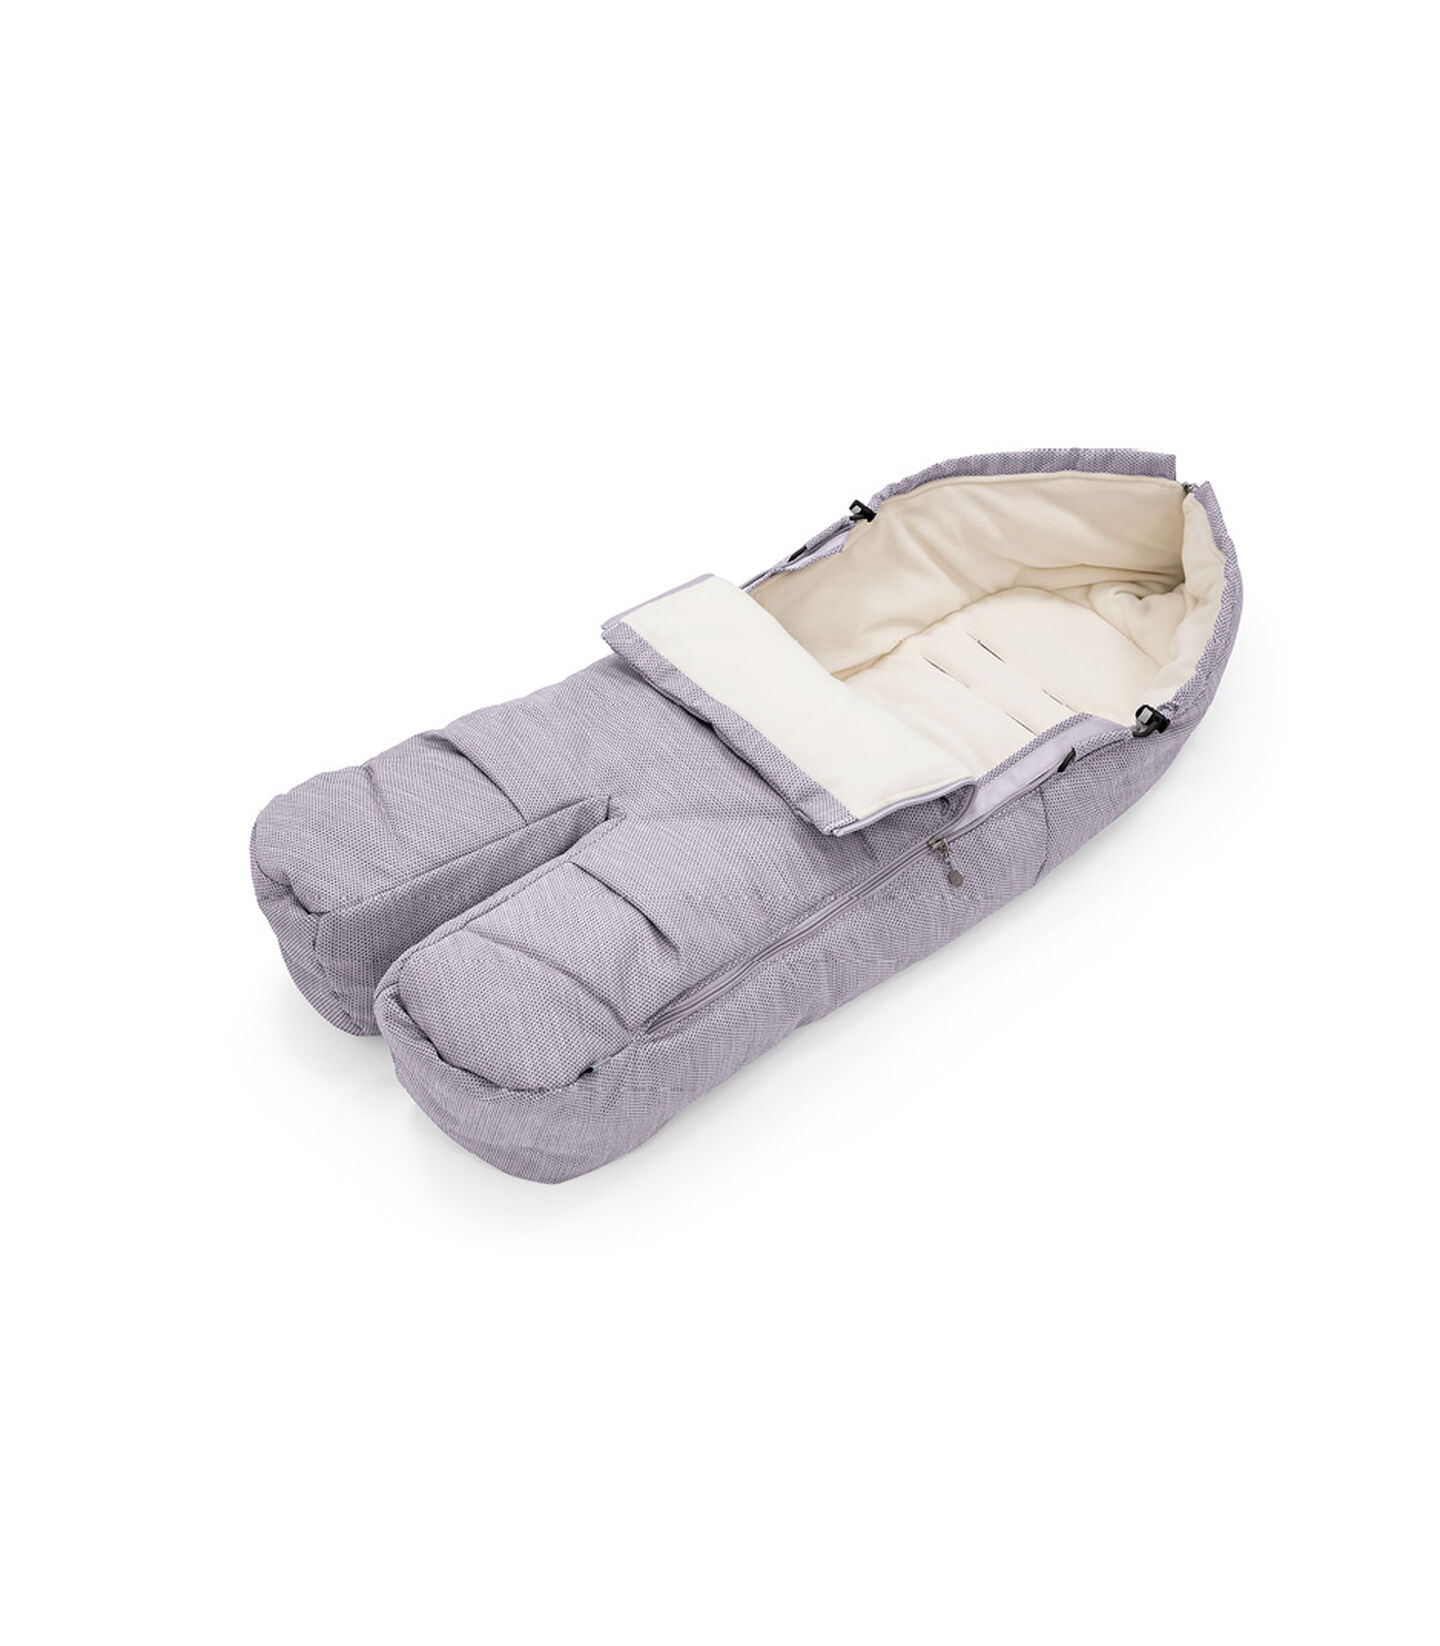 Stokke® Foot Muff Brushed Lilac, Lila, mainview view 2